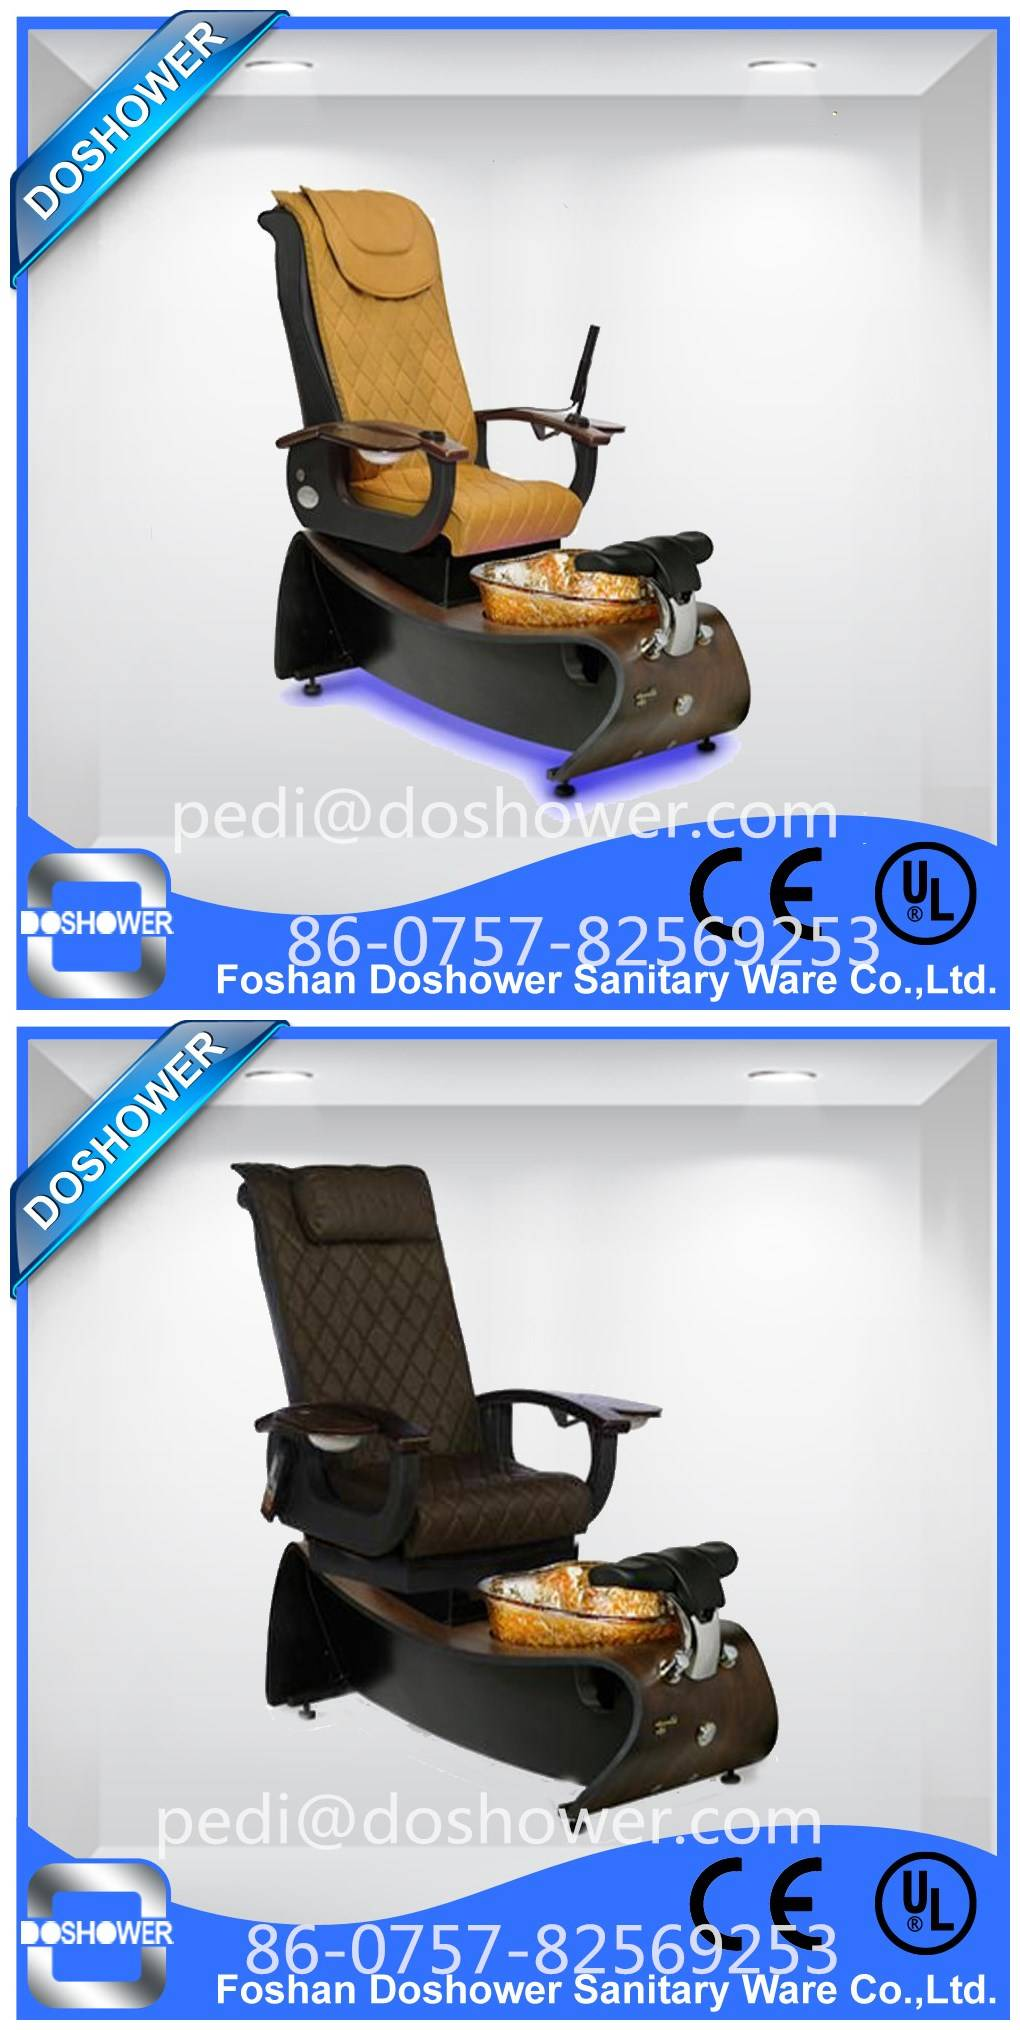 Doshower DS-W21 pedicure foot spa massage chair of pedicure benches